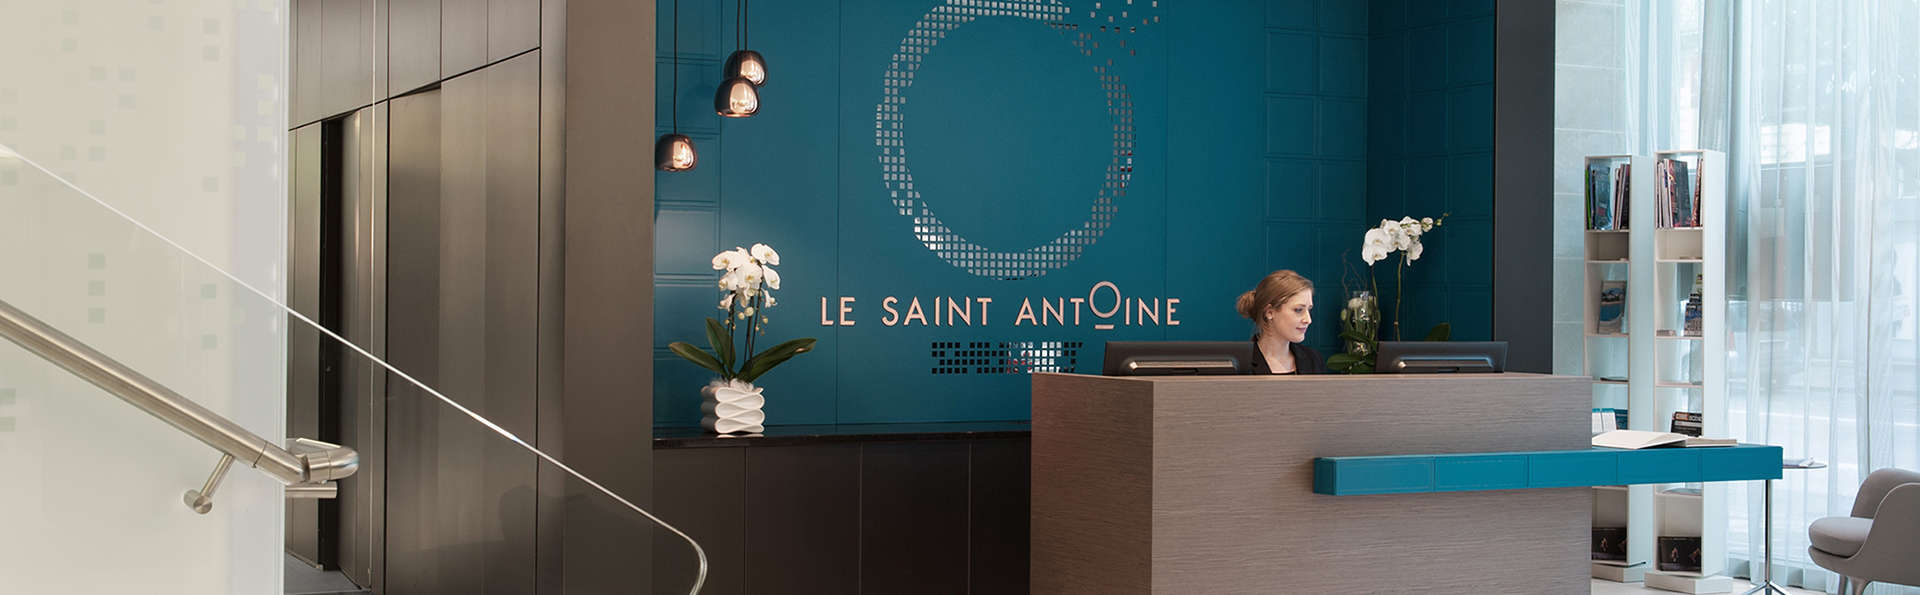 Le Saint-Antoine Hotel & Spa - Edit_Reception.jpg